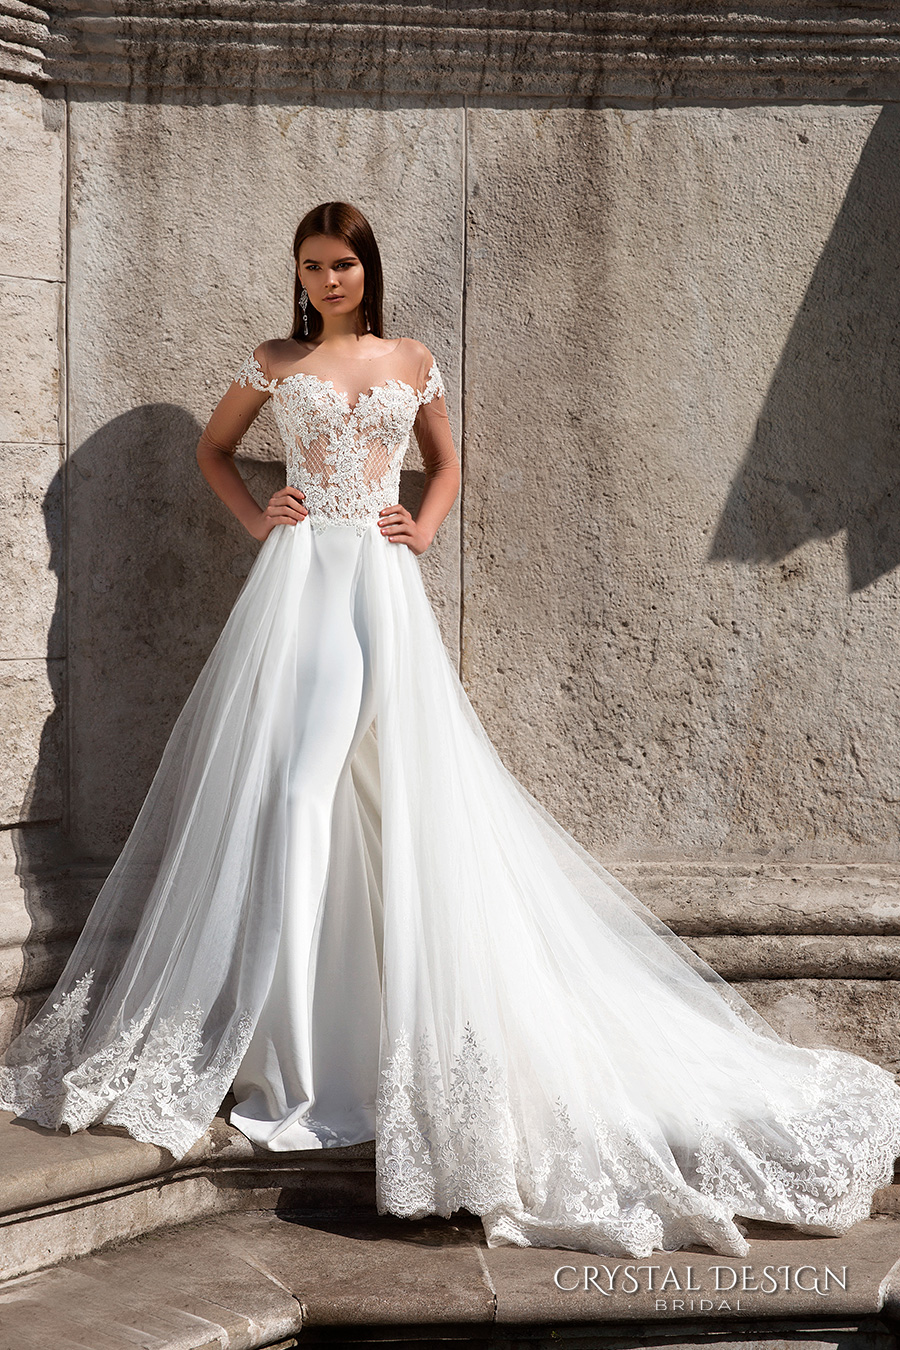 Wedding Gowns With Designs : Crystal design wedding dresses inspirasi